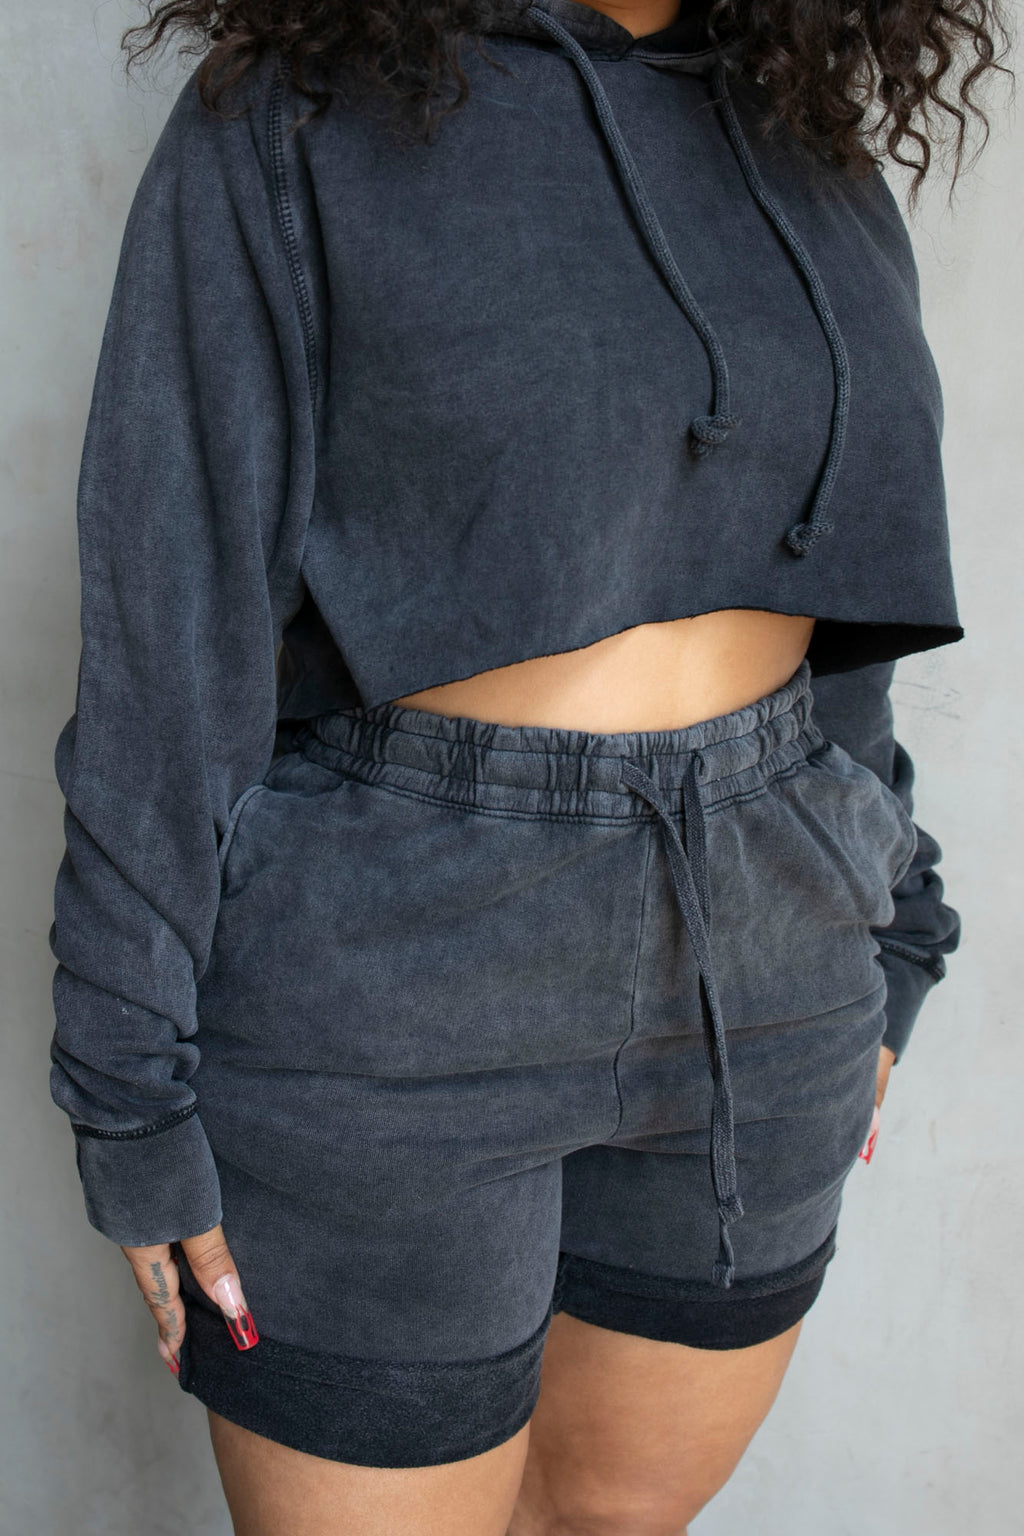 Black Curvy Babe High Waist Jean - Babes And Felines | Specializing in Fashionable Staple Pieces for Every Shape and Size